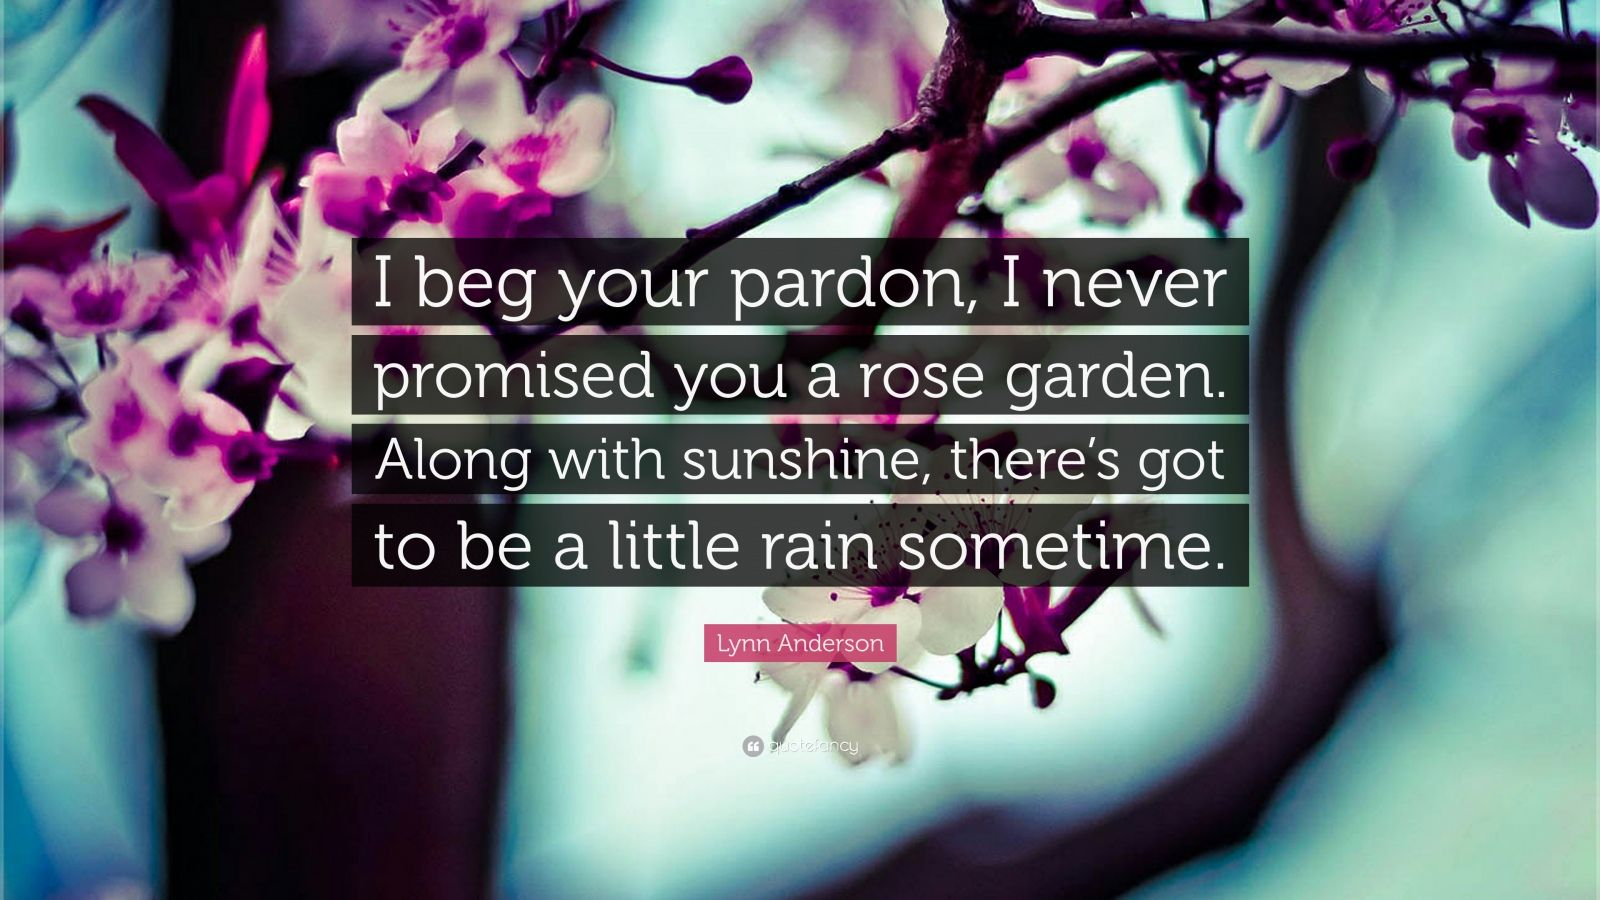 Lynn Anderson Quote I Beg Your Pardon I Never Promised You A Rose Garden Along With Sunshine